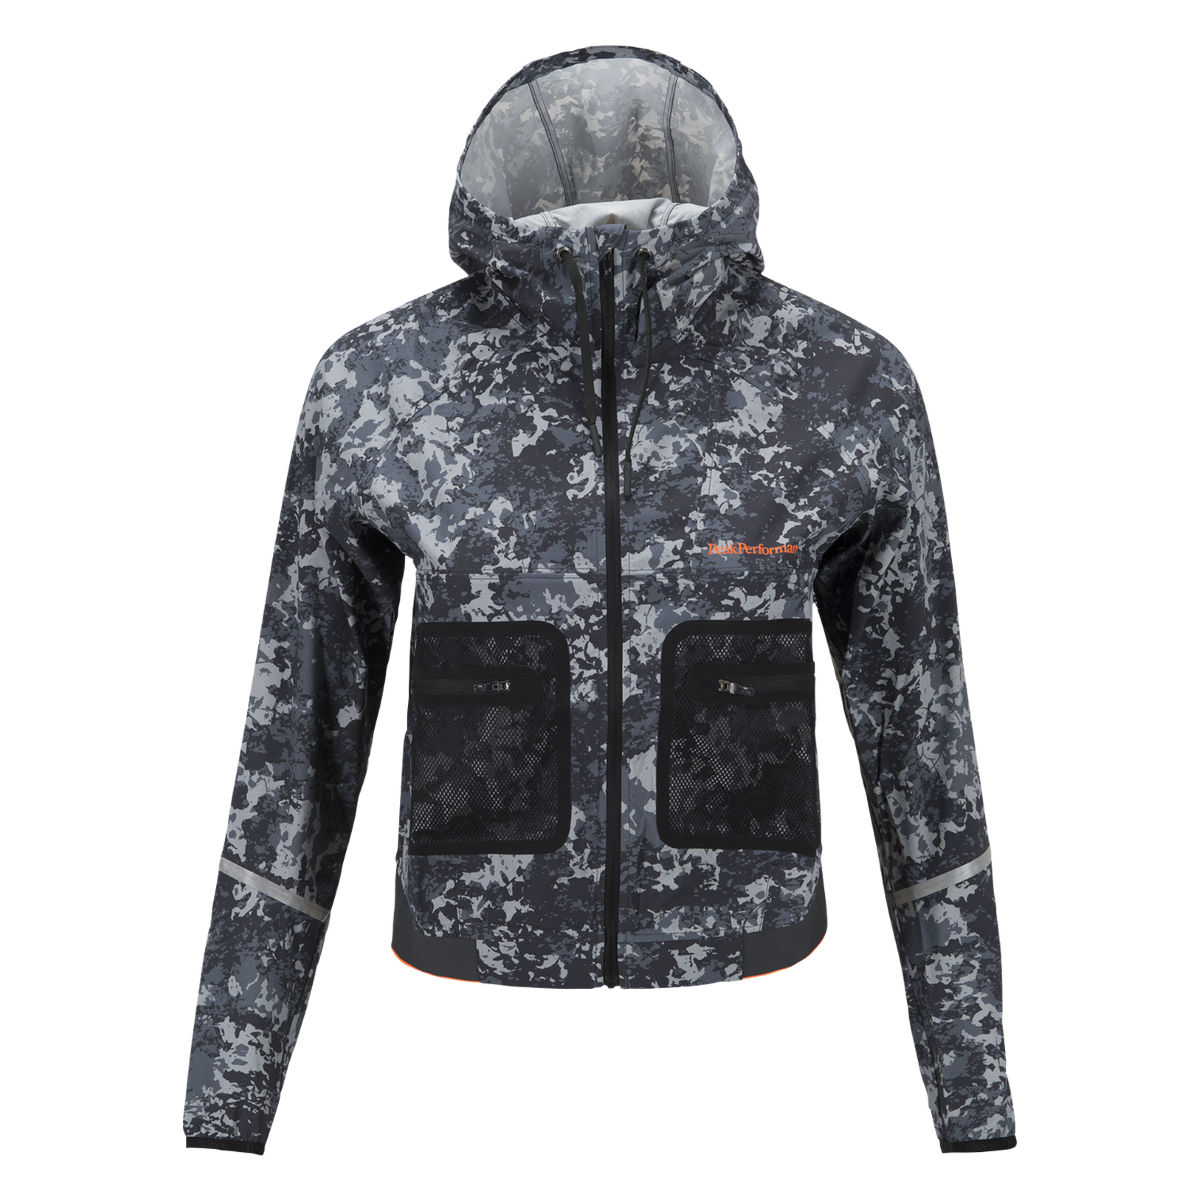 Chaqueta Peak Performance West 4th Street Printed para mujer - Chaquetas